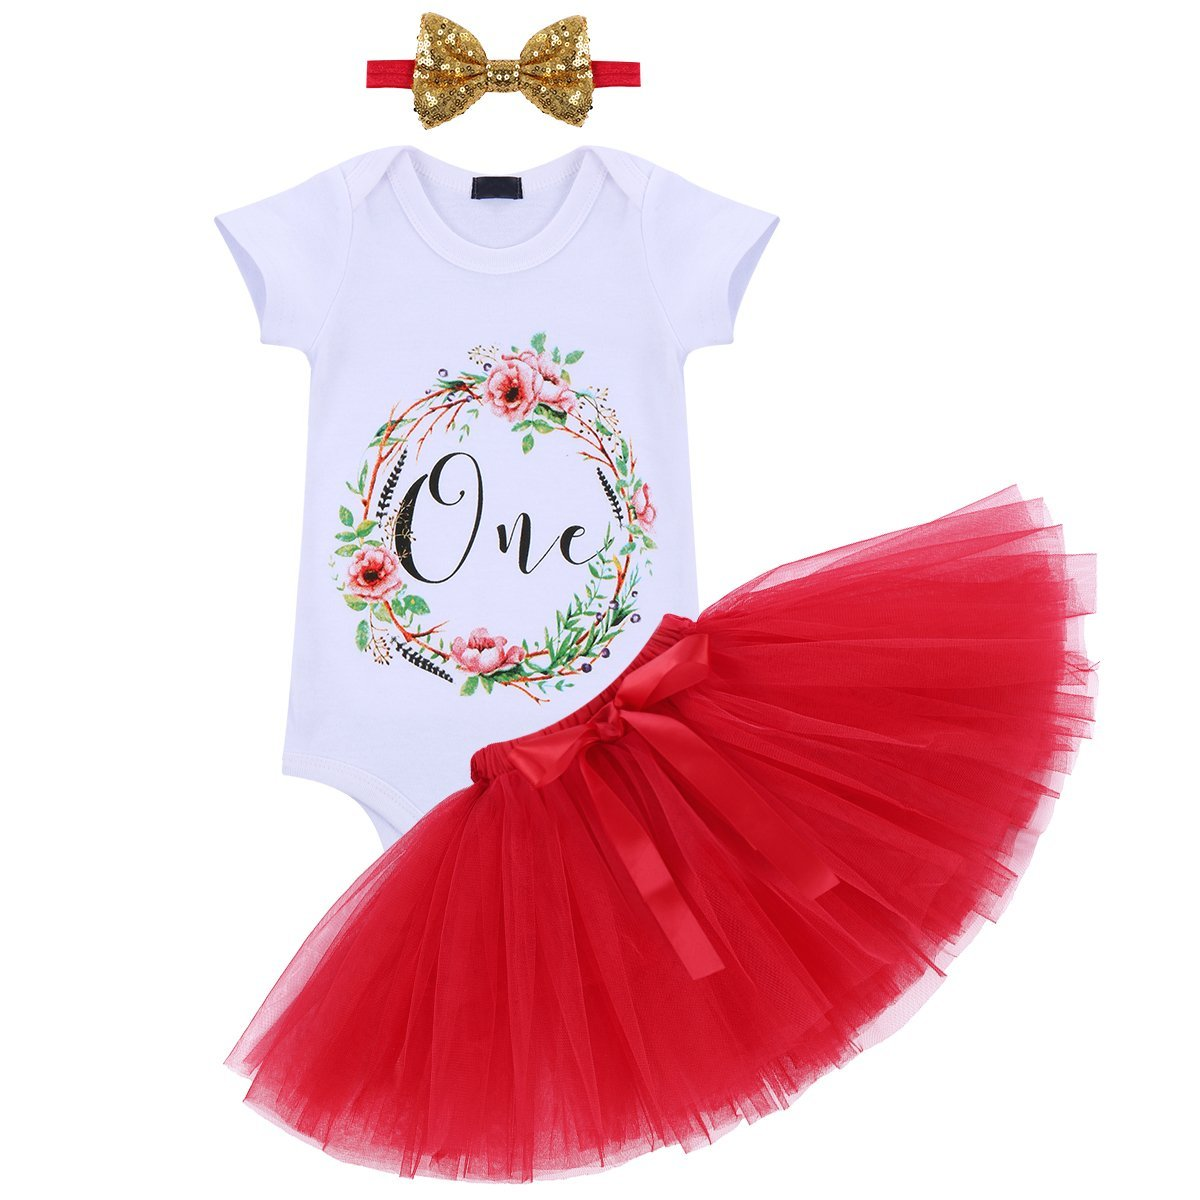 First Birthday Baby Girl Outfits Summer Flower Romper Tulle Skirt Sequin Headband 3PCS Clothes Set Cake Smash